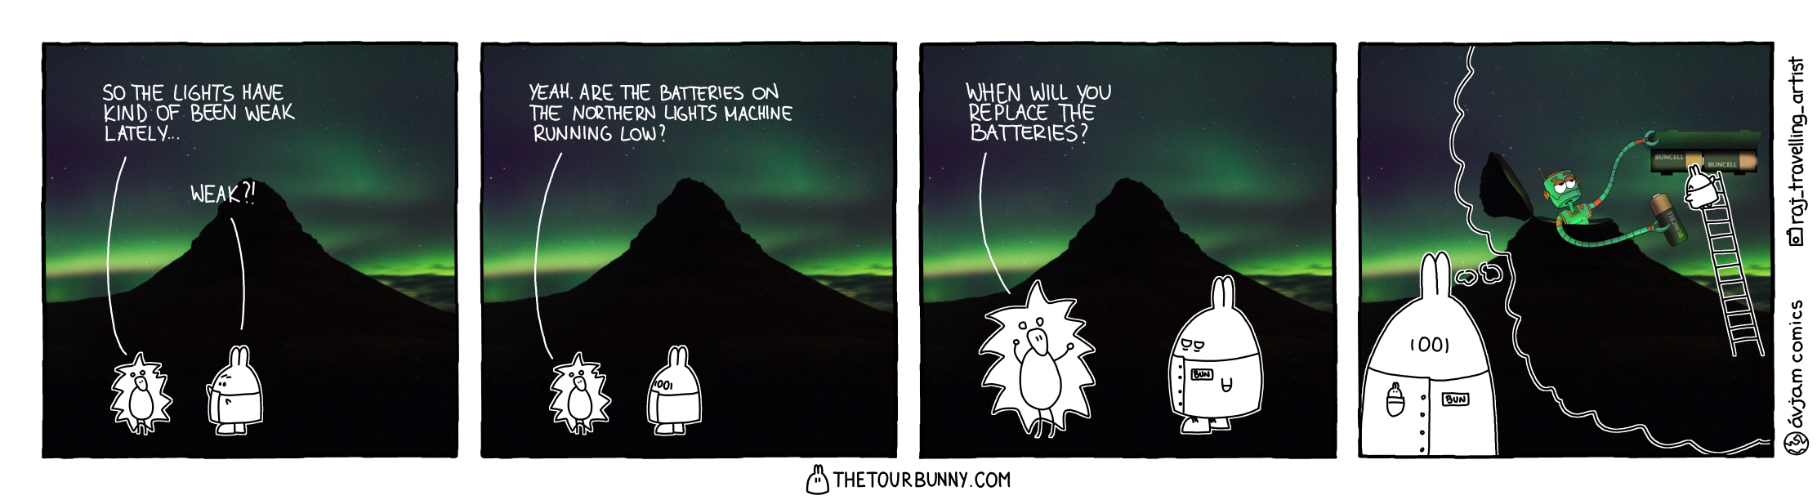 0366 – Battery (with raj_travelling_artist from Instagram)